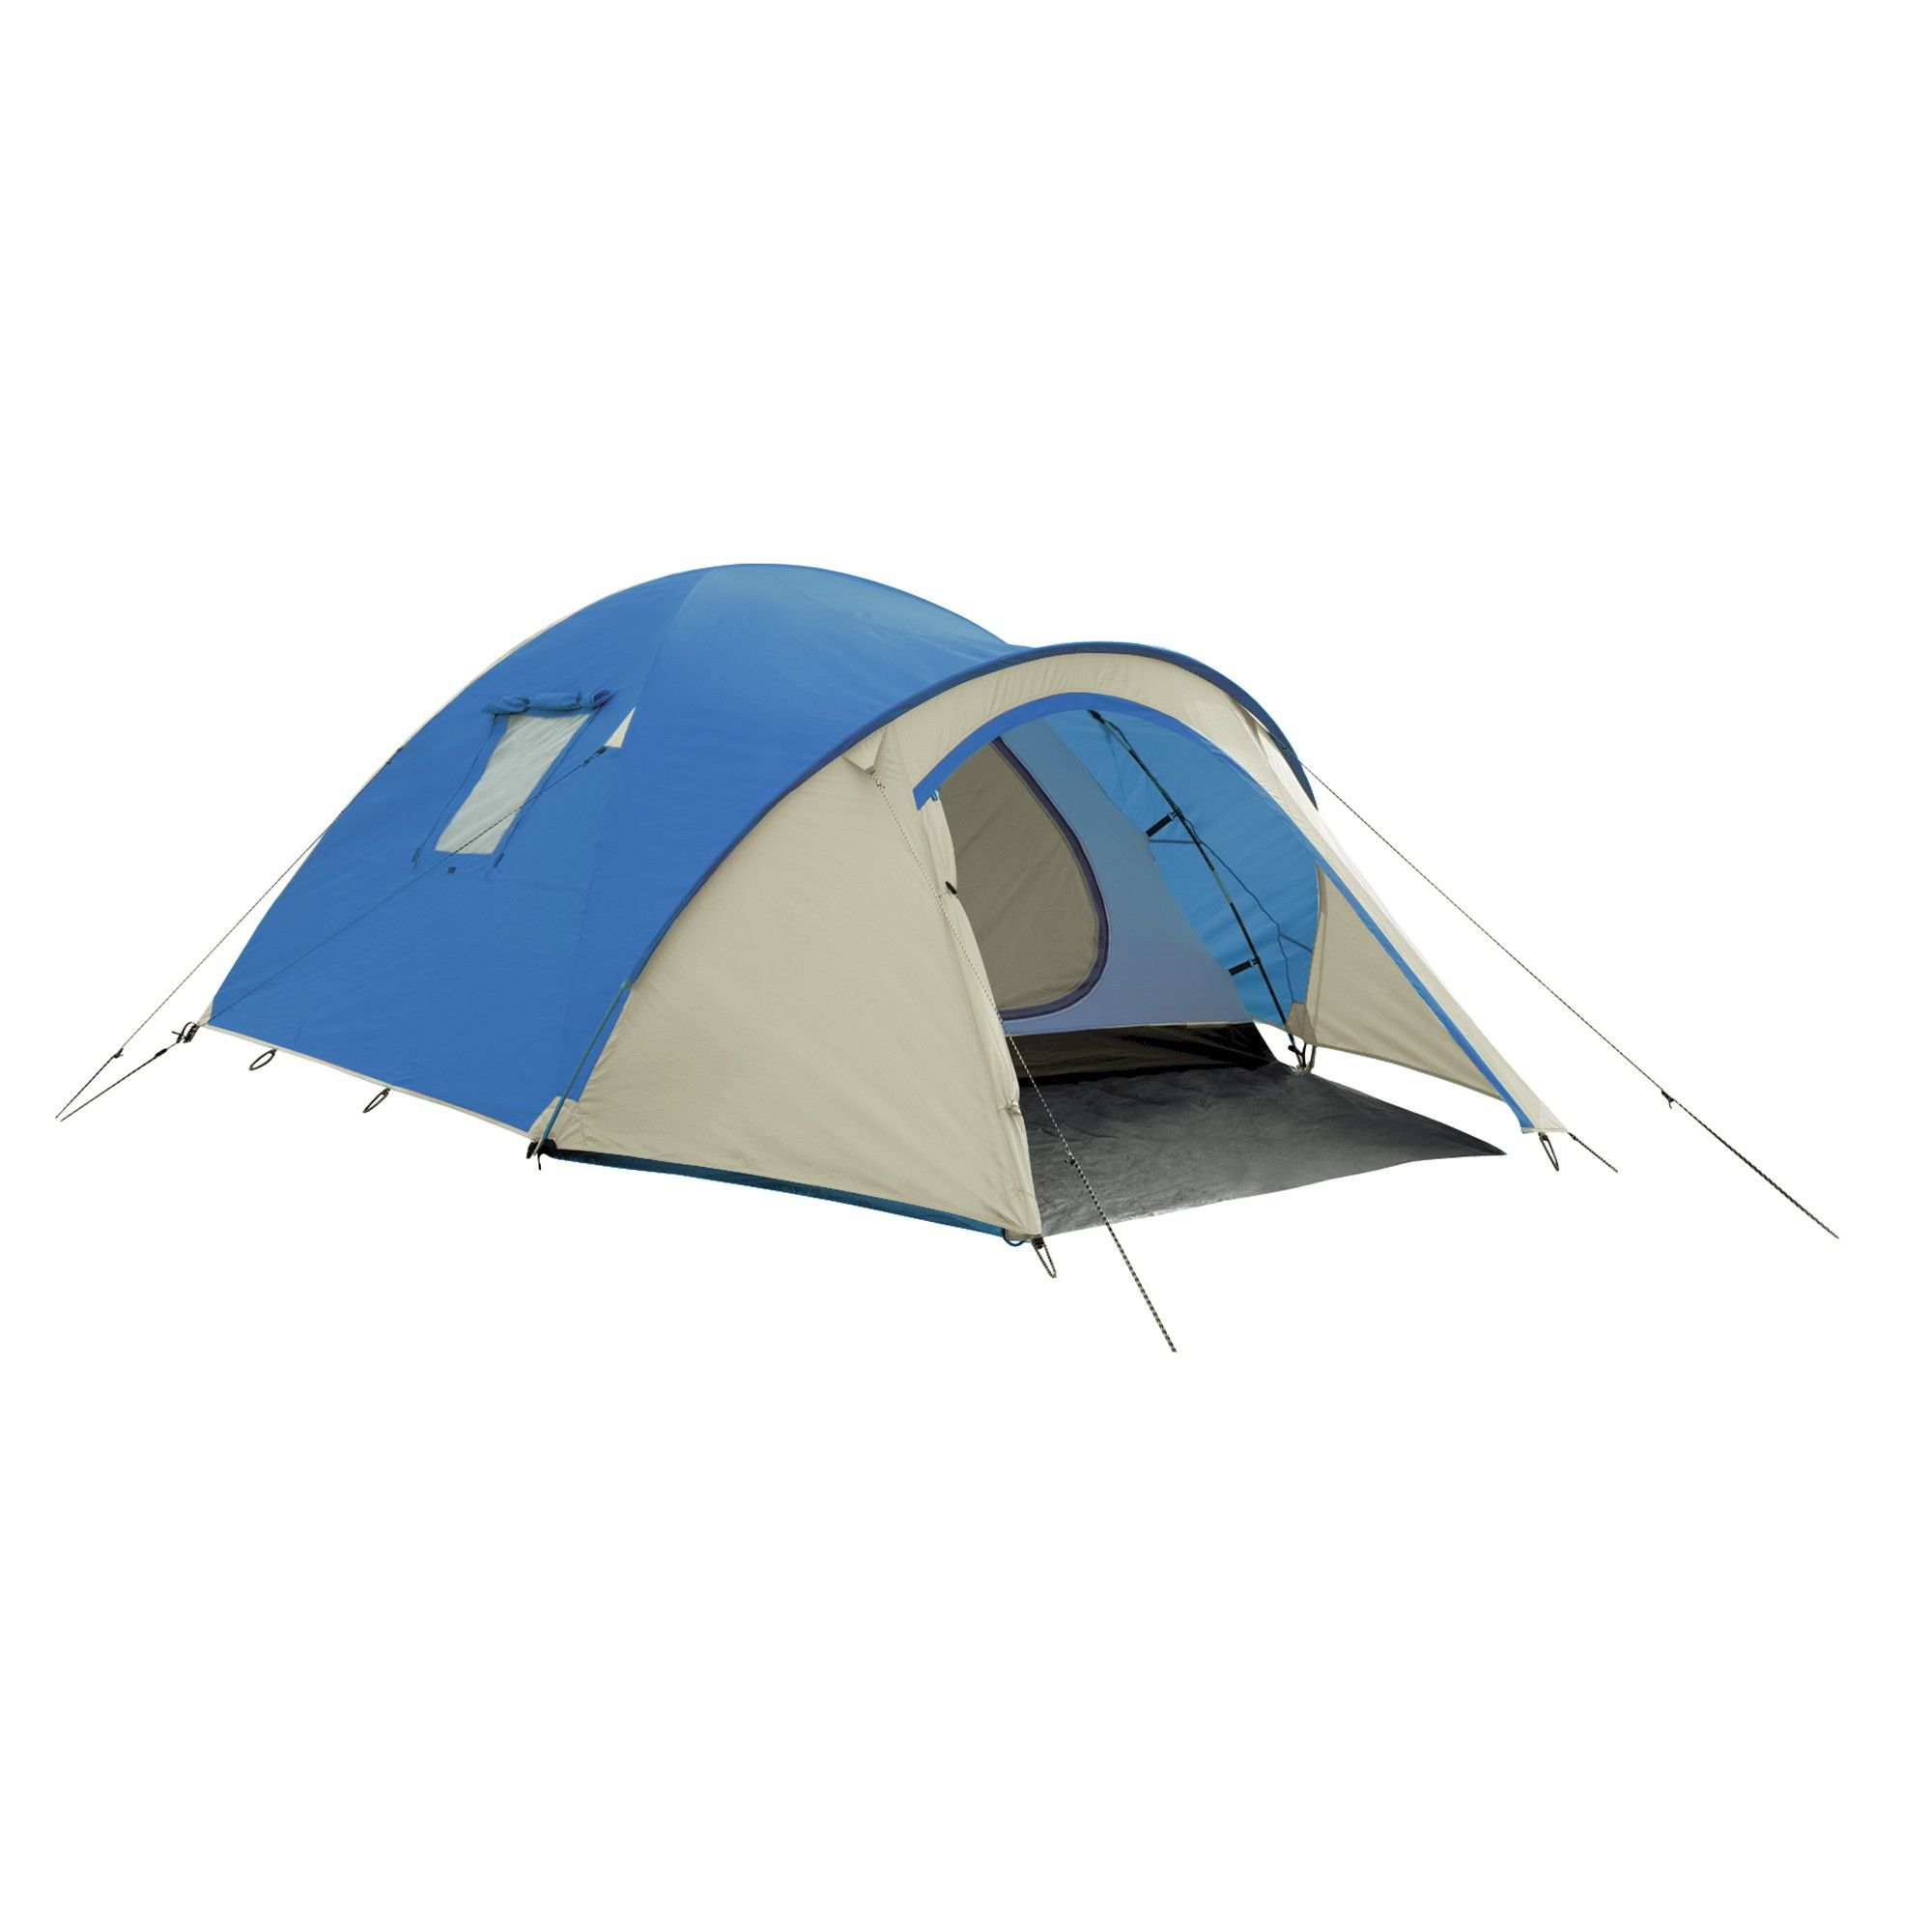 Buy Retreat 60 3 Person Tent - Lake Blue/Aluminium online Kathmandu  sc 1 st  Pinterest & Buy Retreat 60 3 Person Tent - Lake Blue/Aluminium online ...